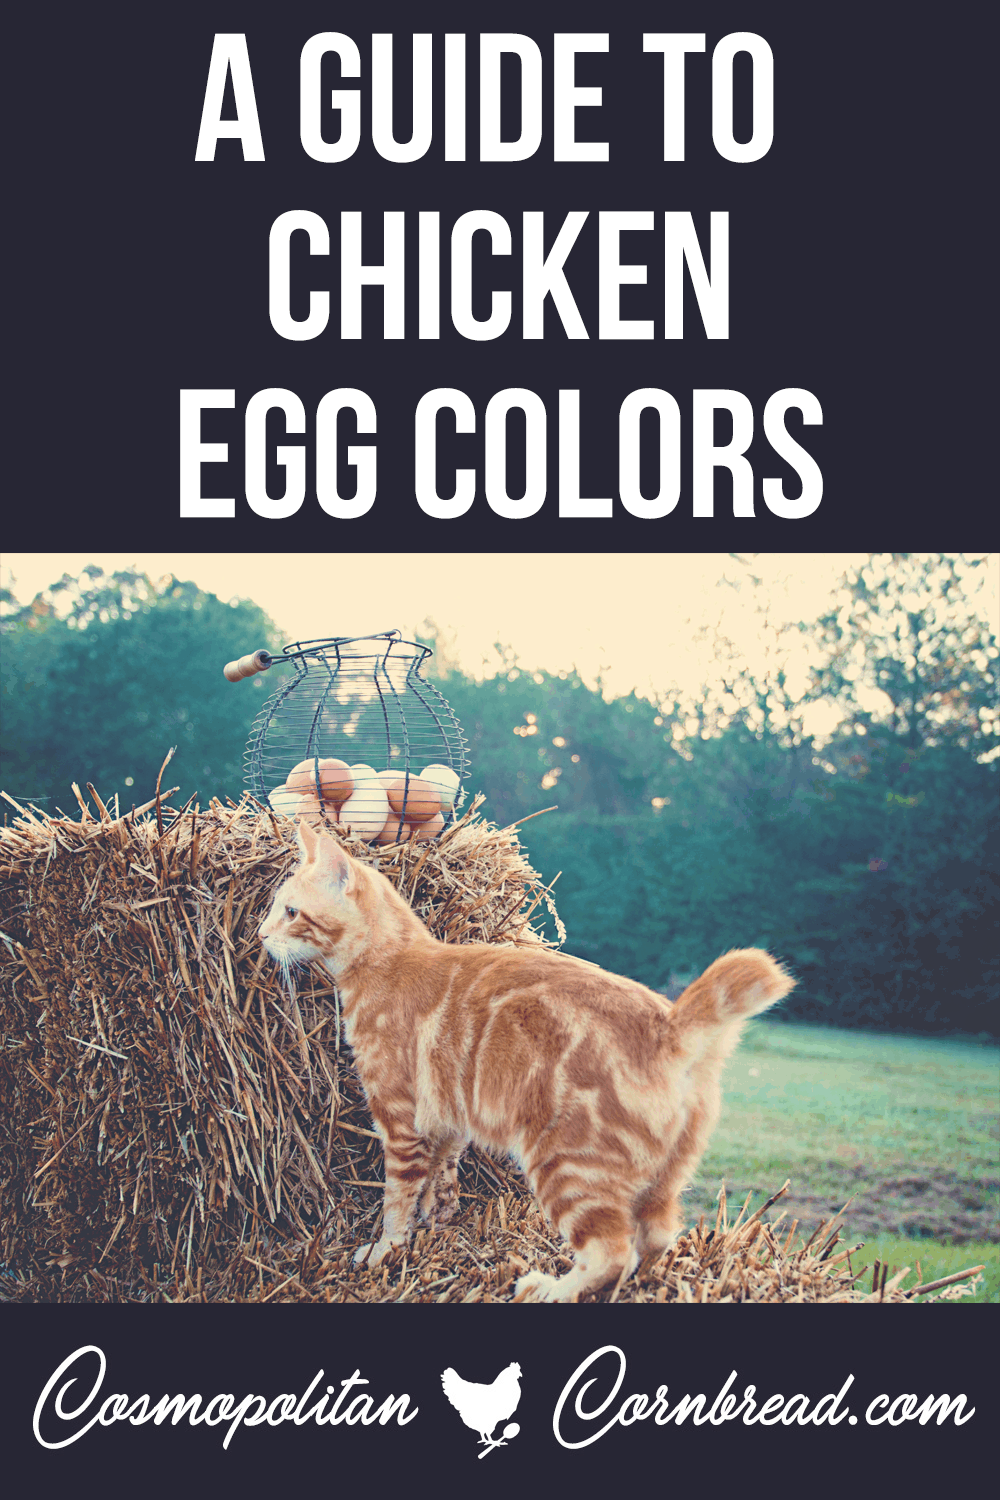 A Guide to Chicken Egg Colors - Why do chickens lay different colored eggs? Learn the simple reason for different colors in the egg basket.